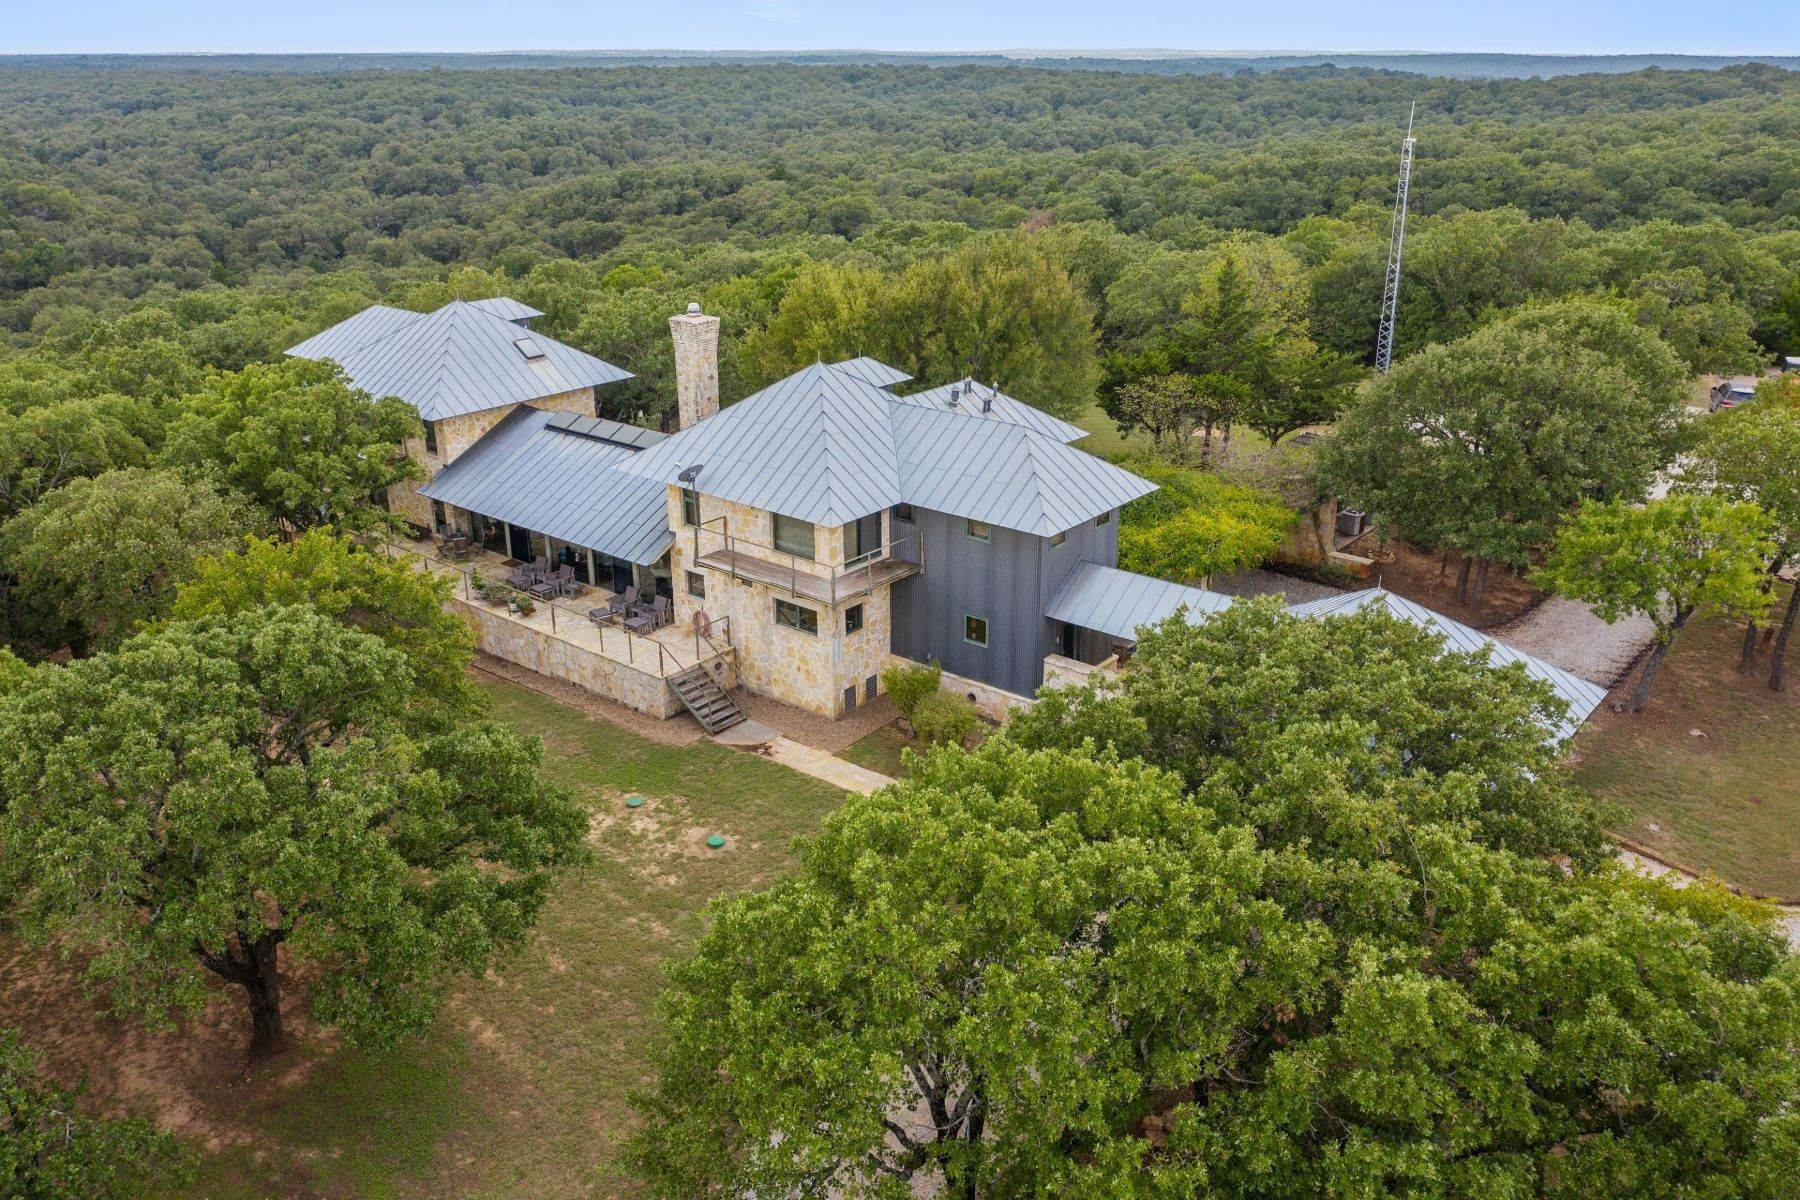 Farm and Ranch Properties for Sale at The Woods Ranch 3,048+/- Acres 1641 FM 2953 Saint Jo, Texas 76265 United States